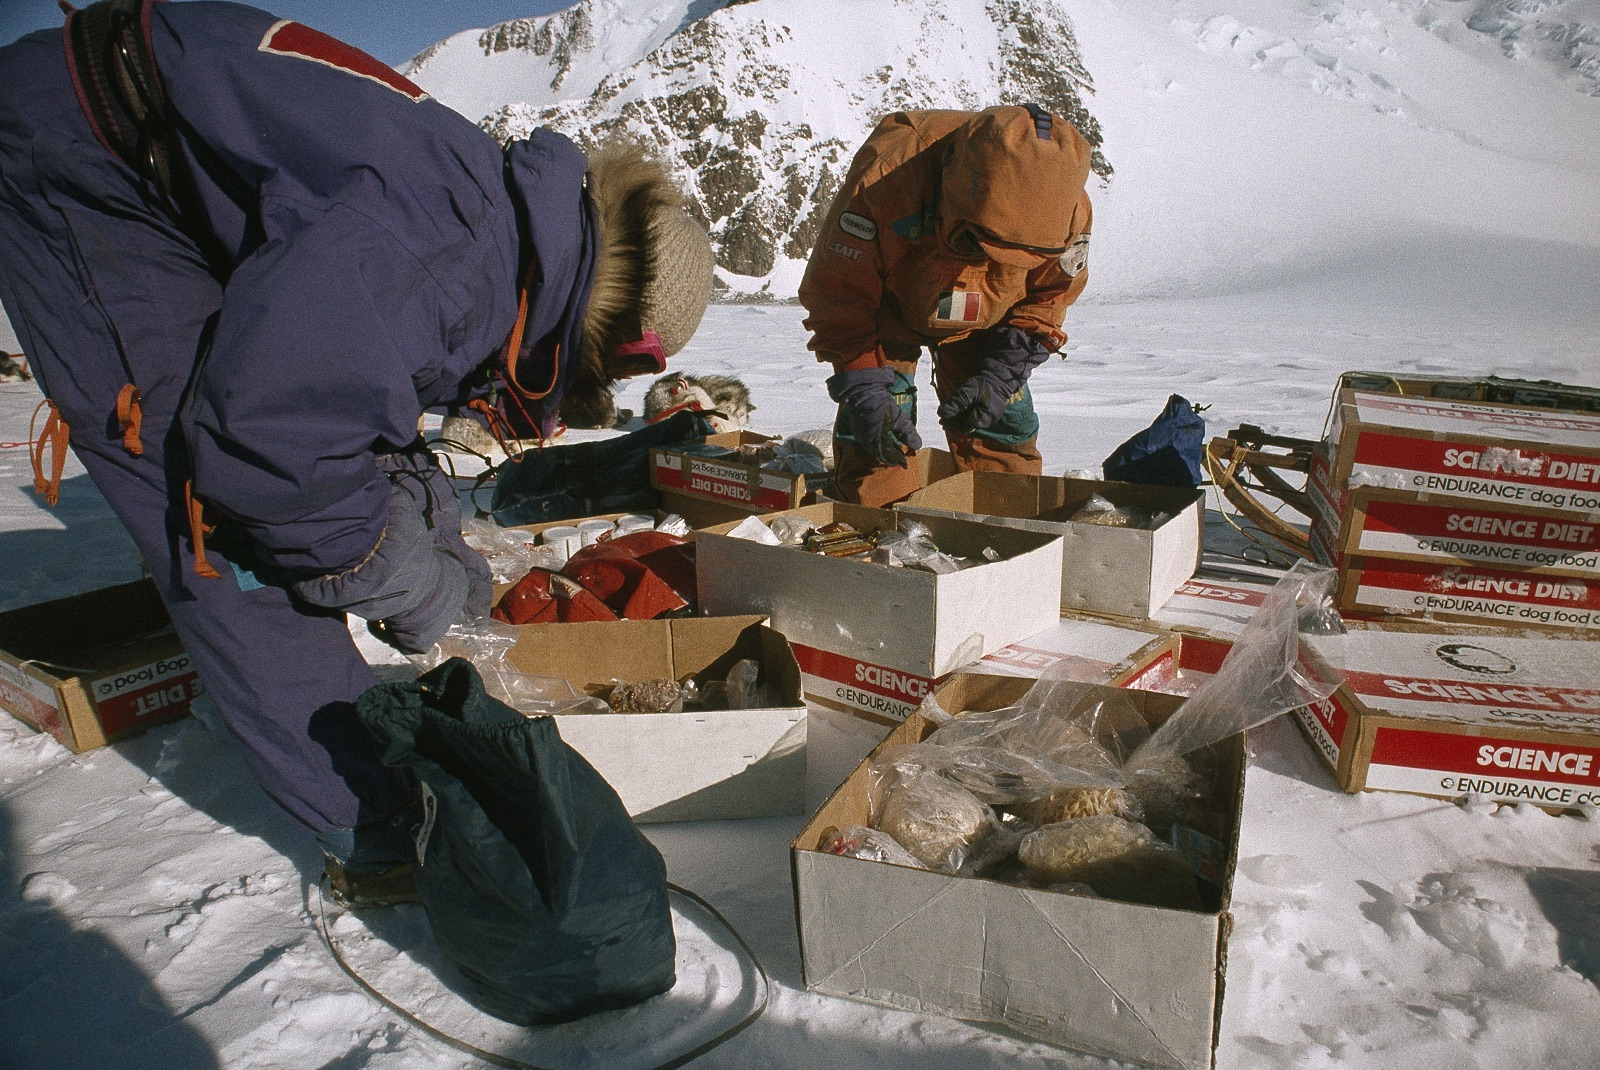 Each cache contained food for men and dogs, fuel for camp stoves, plus special treats and notes packed by the volunteers. Photo © Will Steger